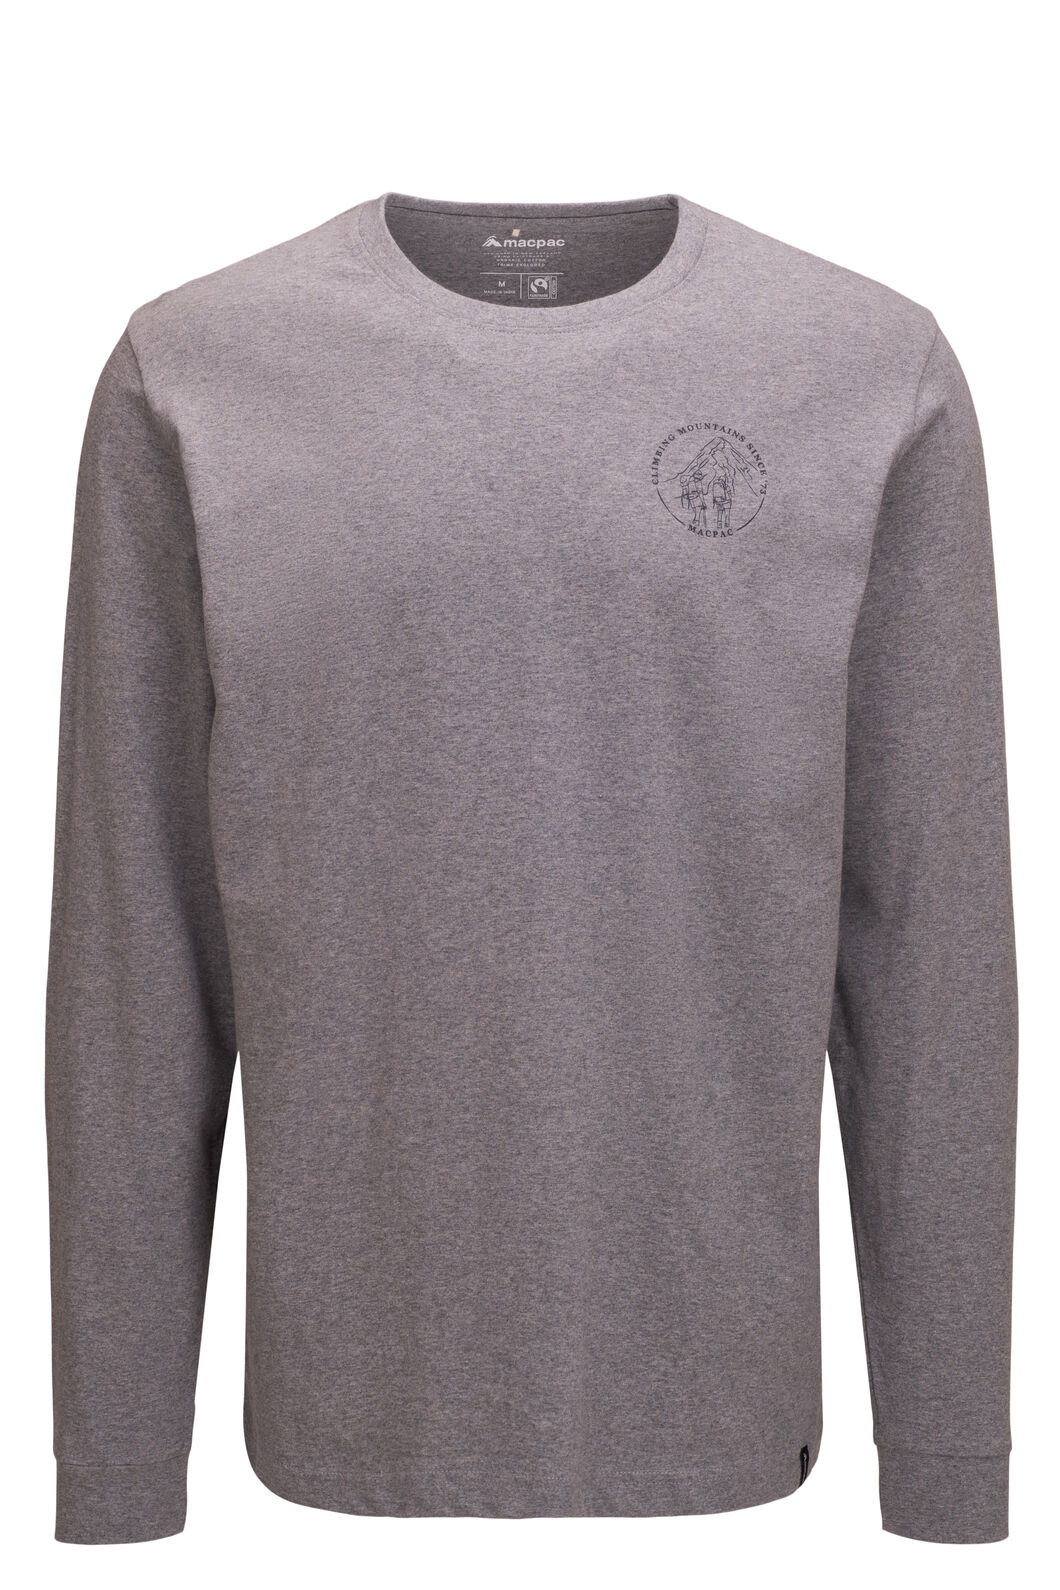 Macpac Since 1973 Fairtrade Organic Cotton Long Sleeve Tee — Men's, Grey Marle, hi-res